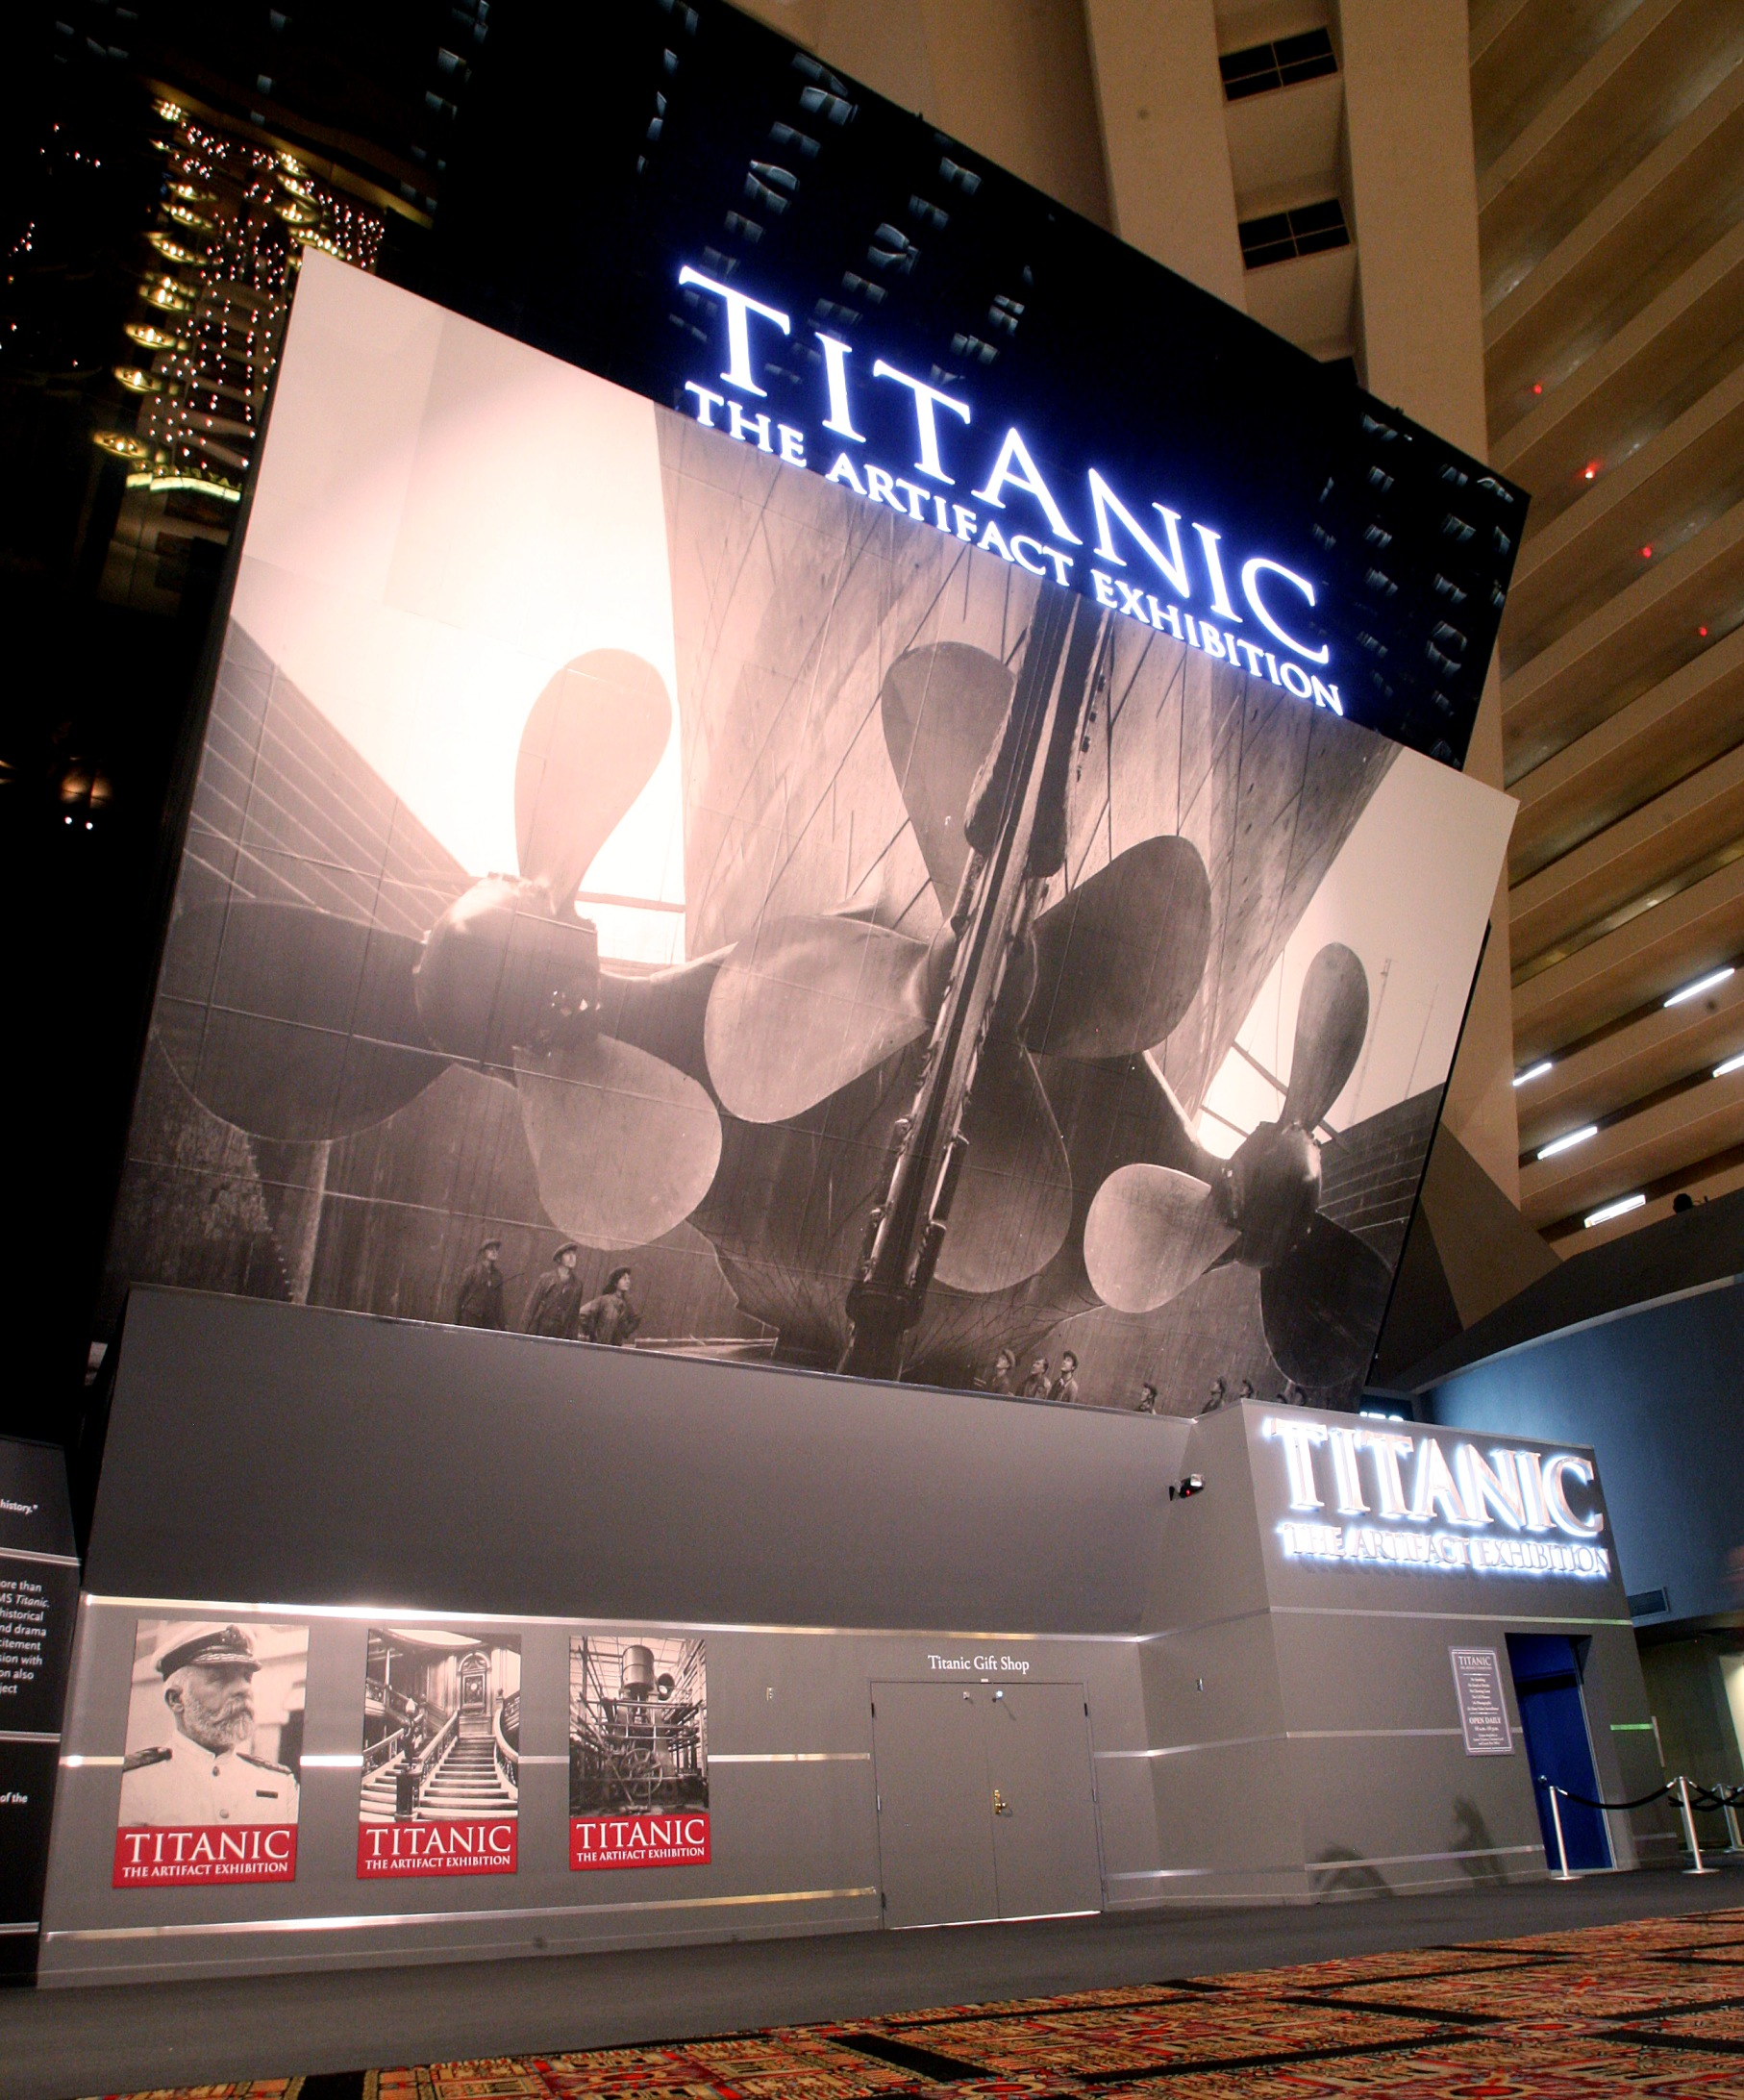 Titanic: The Artifact Exhibition at Luxor